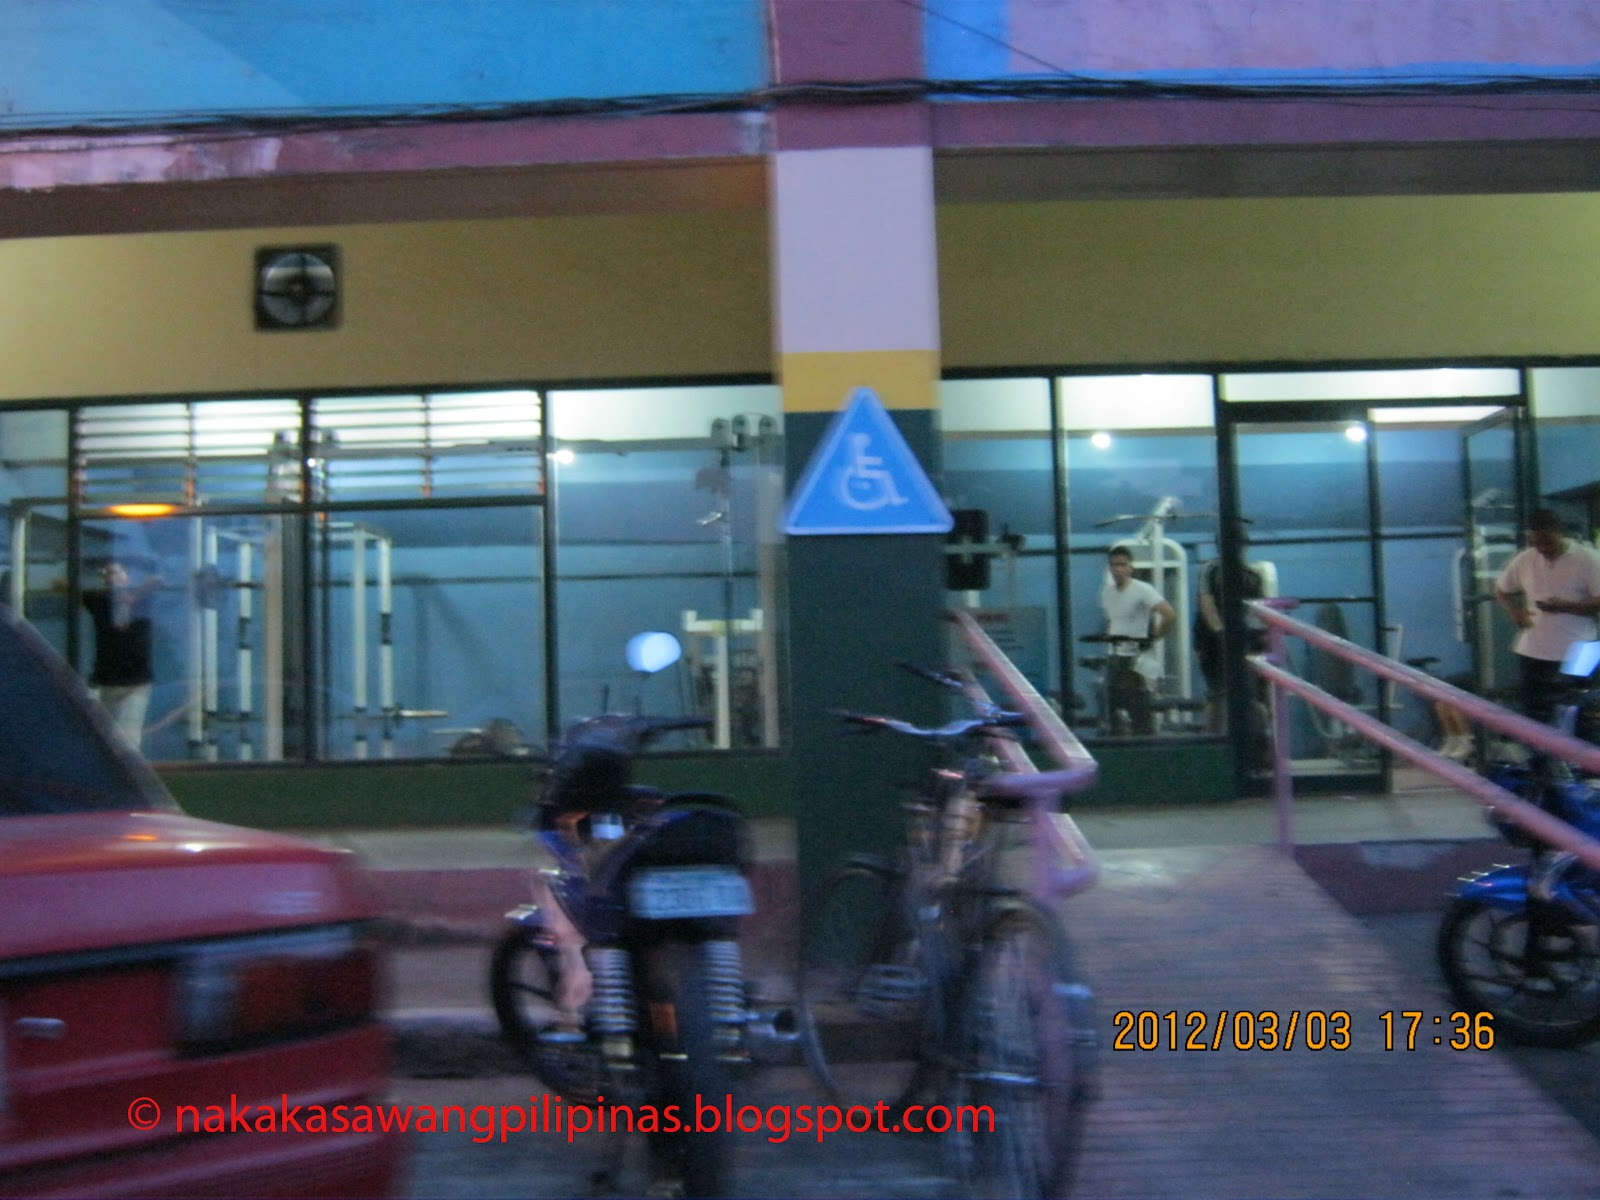 Life in the philippines jogging at marikina sport center Marikina sports center swimming pool